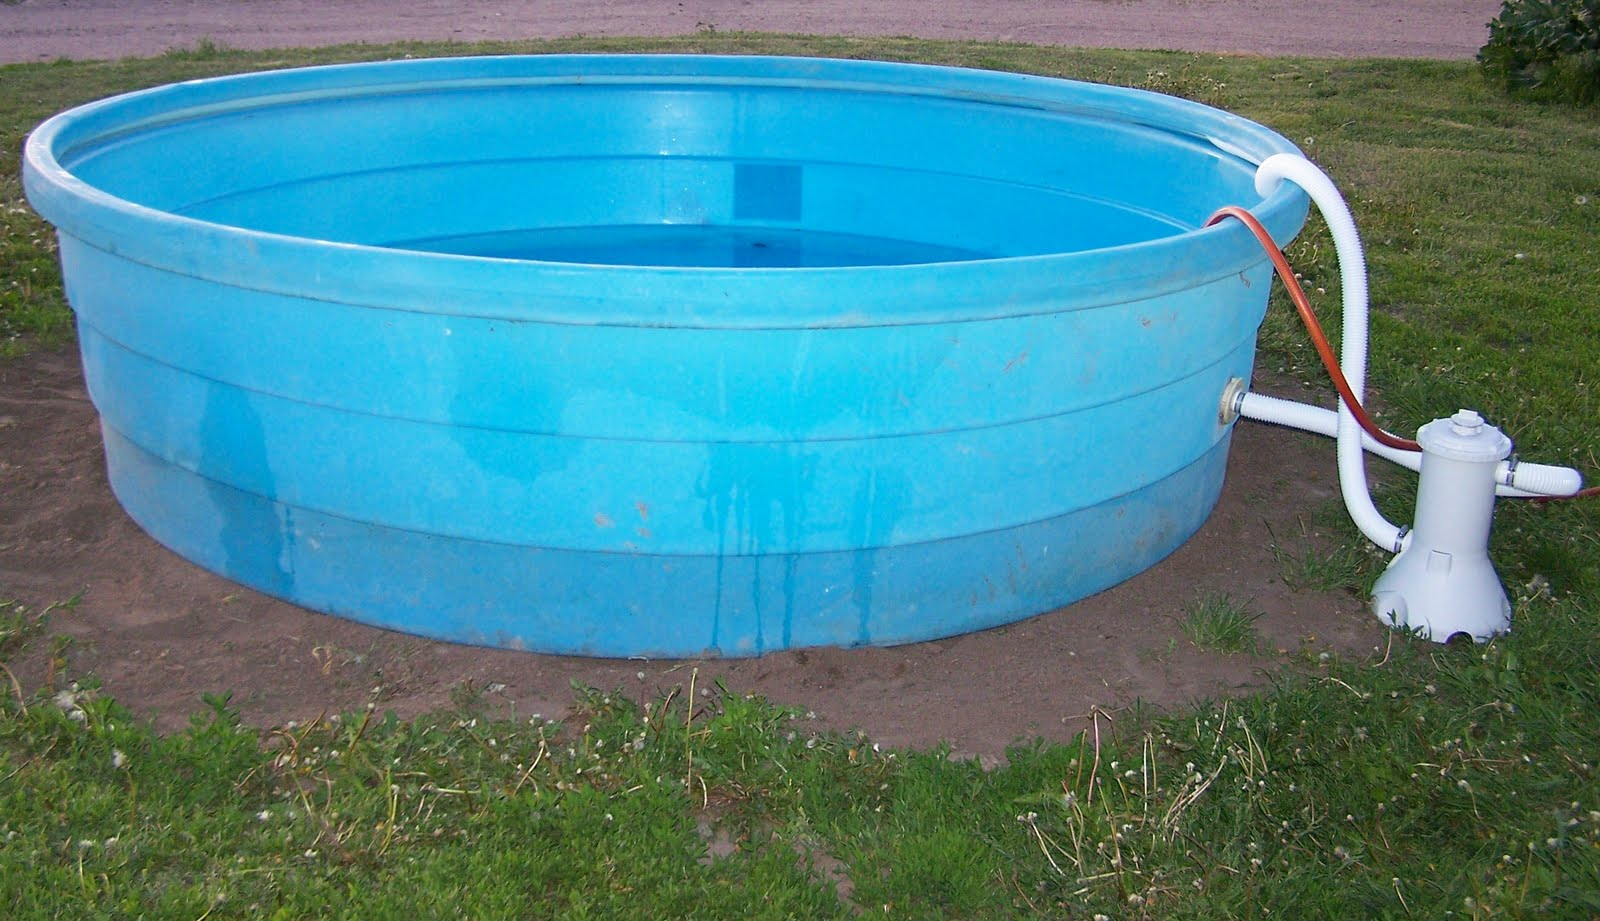 Cattle in the swimming pool - Convert swimming pool to rainwater tank ...